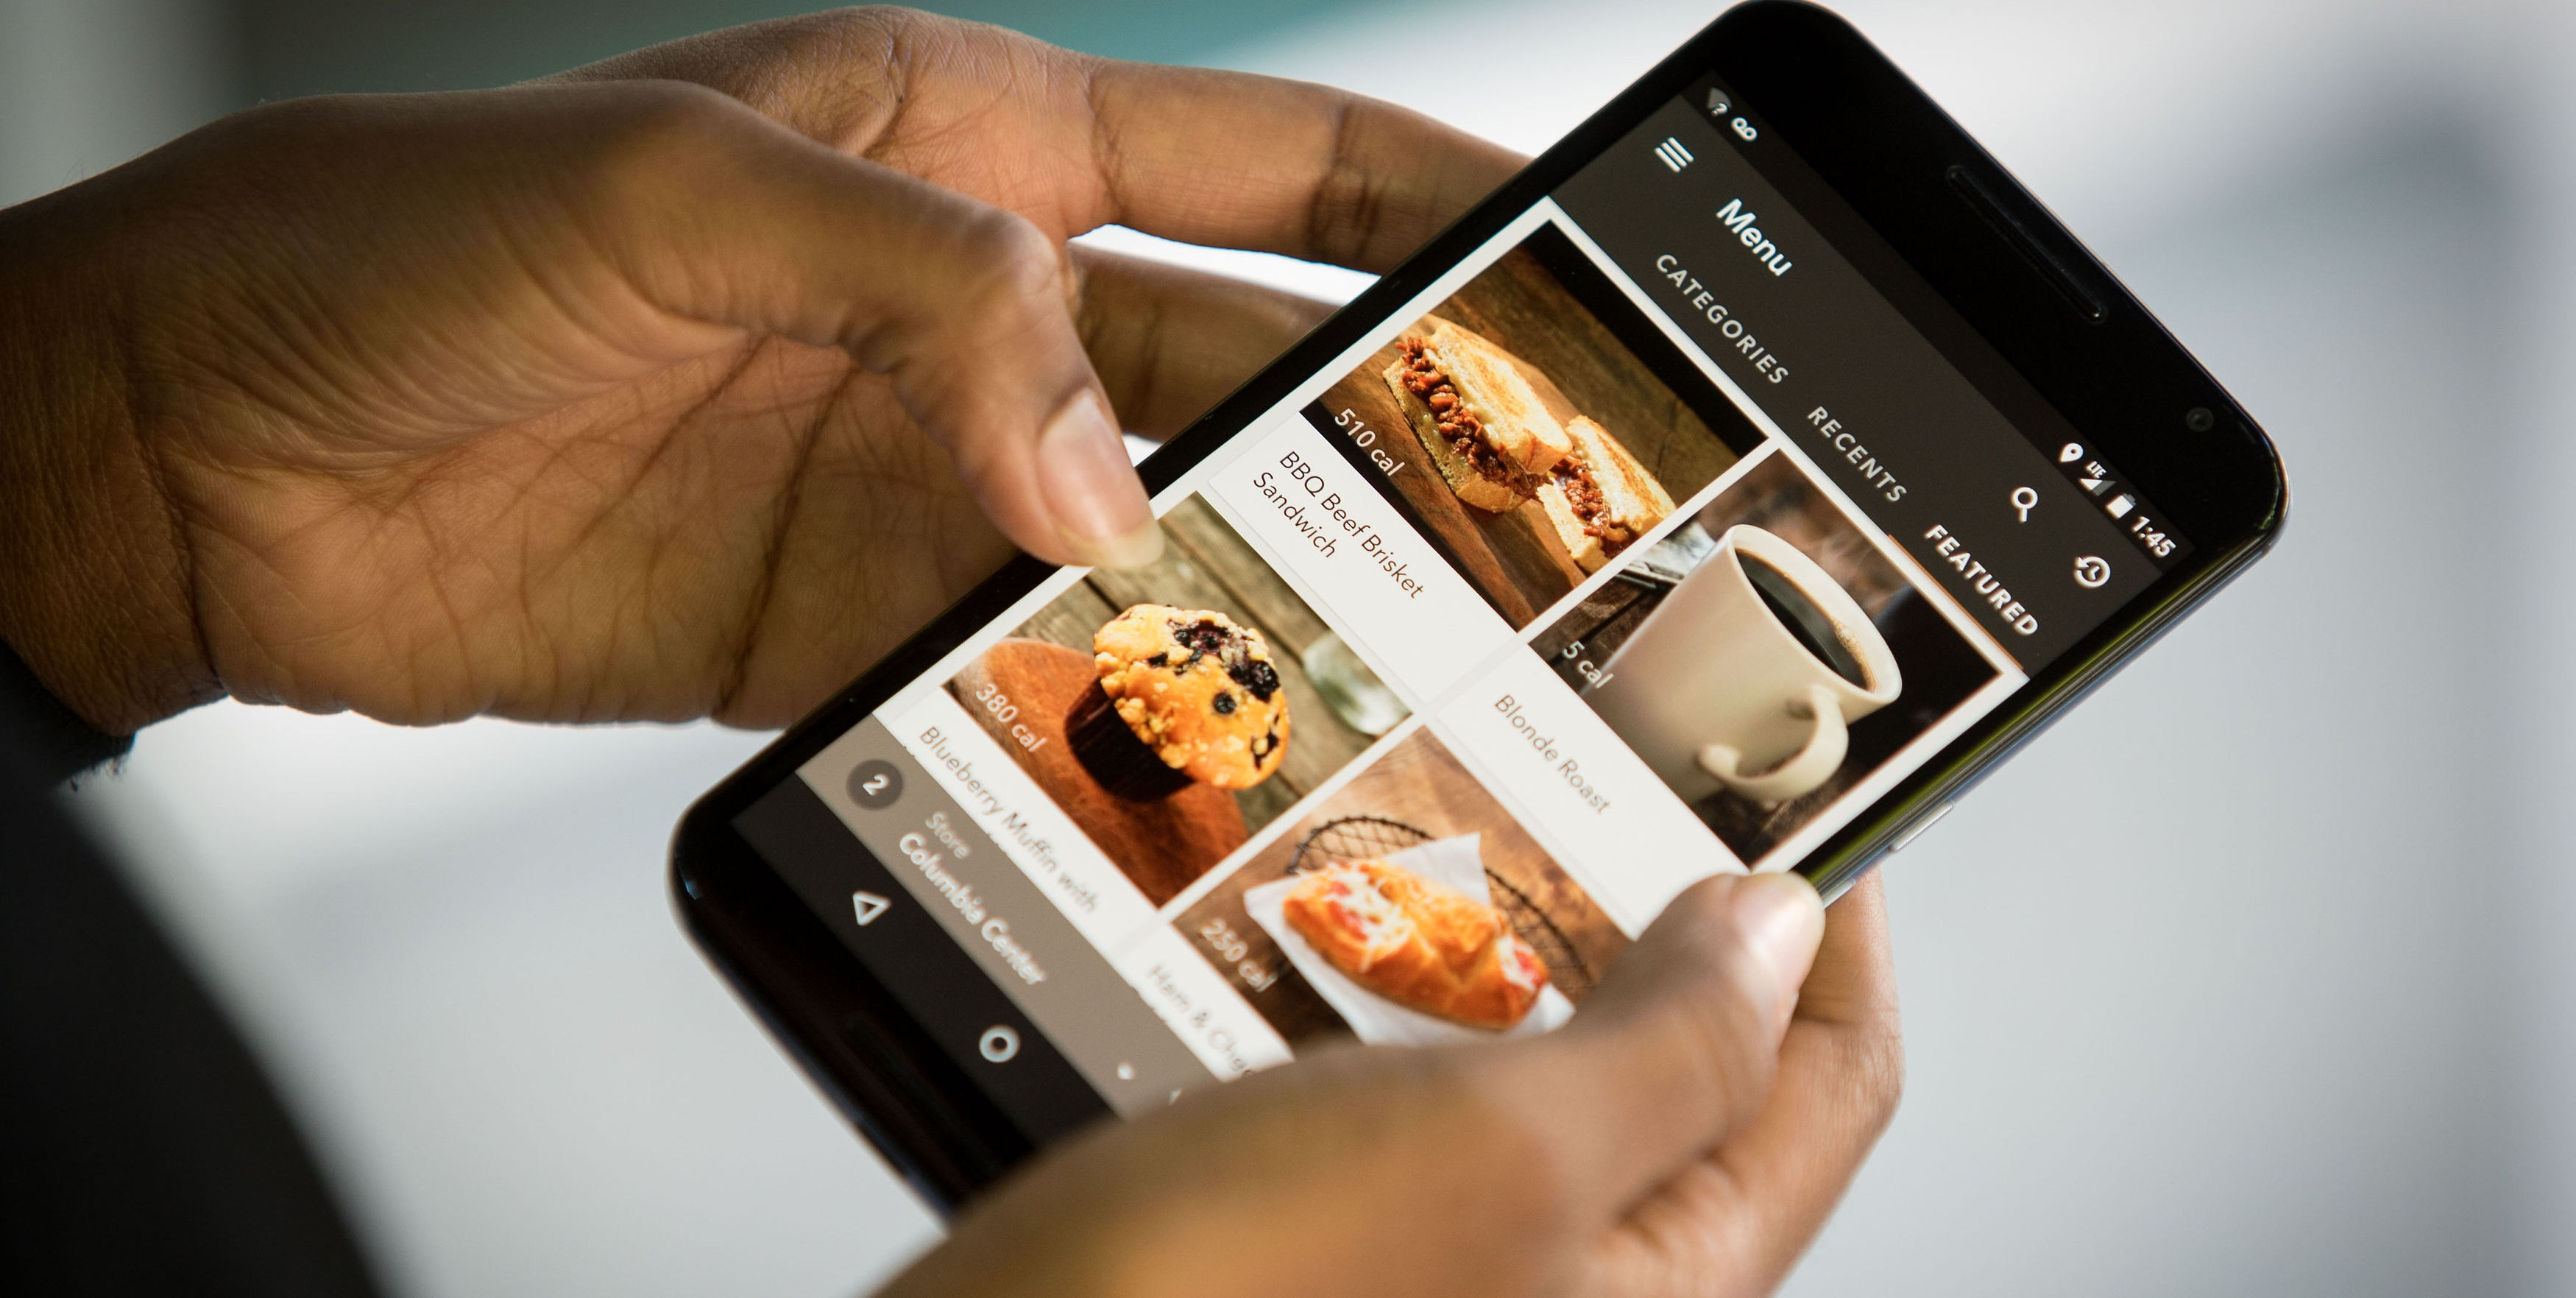 Starbucks Mobile Ordering Comes to the UK